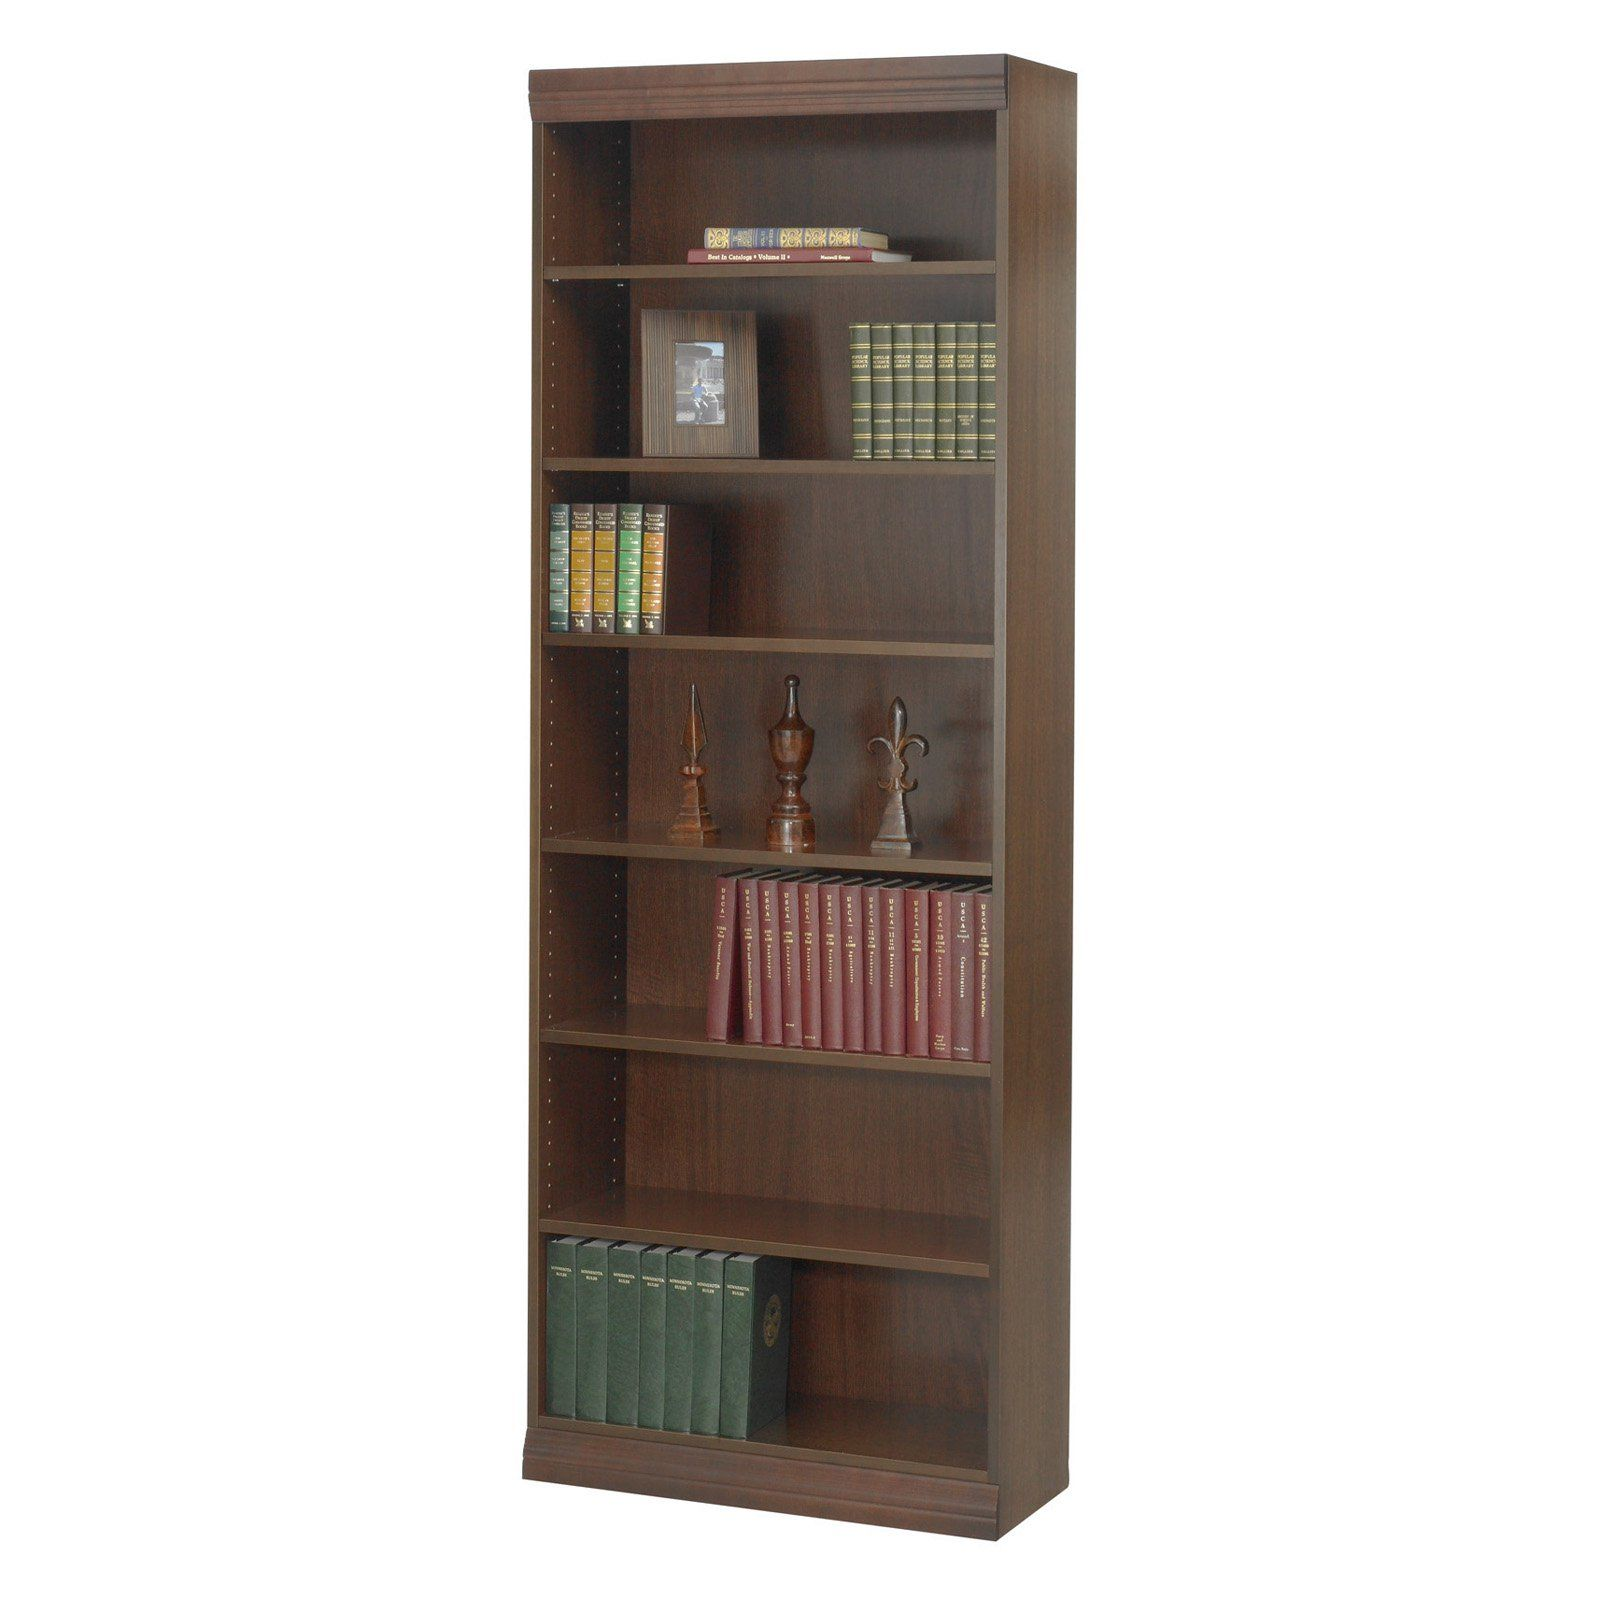 Safco 7-Shelf Veneer Baby Bookcase - 30W in. - The Safco 7-Shelf Veneer Baby Bookcase- 30W in. is a durable accompanying piece to your home office or work area. Available in multiple finish color o...